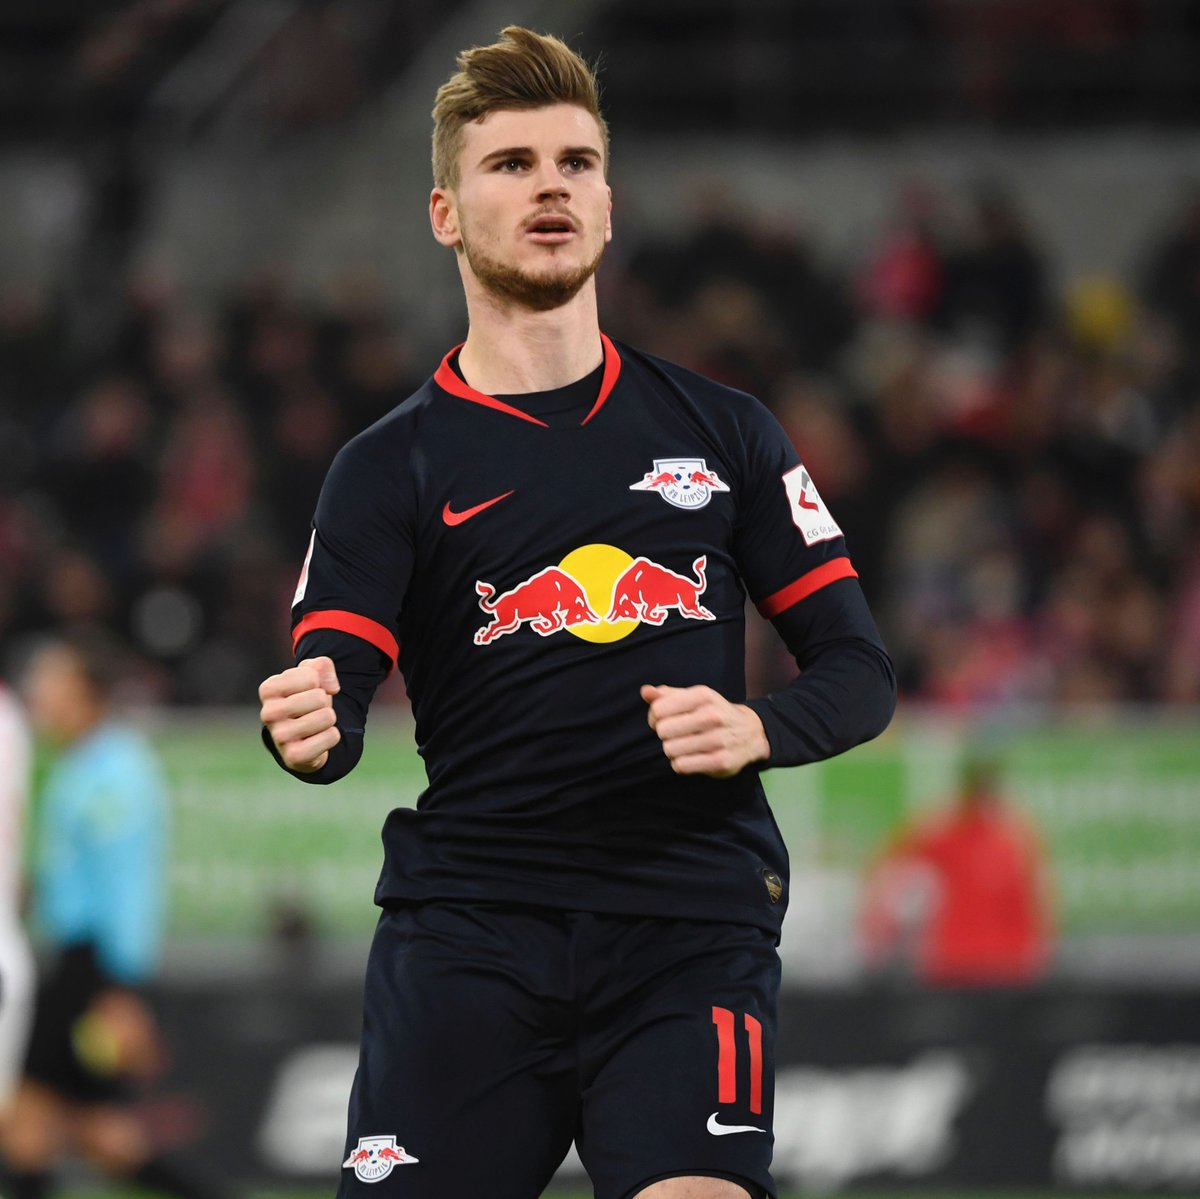 Chelsea are hoping to beat Liverpool to the signing of RB Leipzig forward Timo Werner, according to The Telegraph 👀